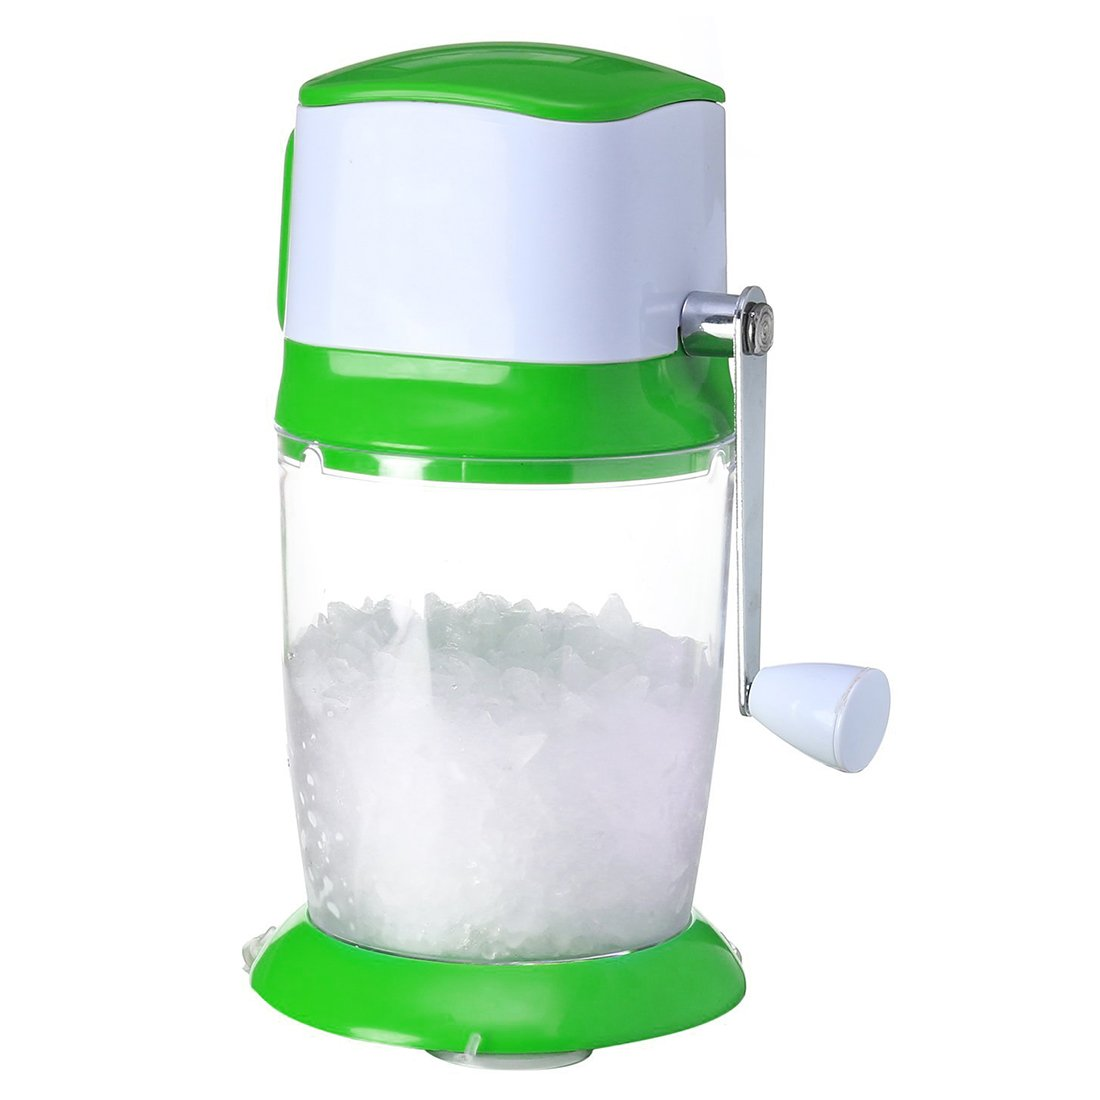 [UPGRADED] Ice Crusher Shaver Manual Hand Crank Ice Grinder for Fine or Coarse Pieces - Ice Treats or Slushy Desserts Large 50 OZ Bucket Shaved Ice Treats or Slushy Desserts 304 Stainless Steel Blade